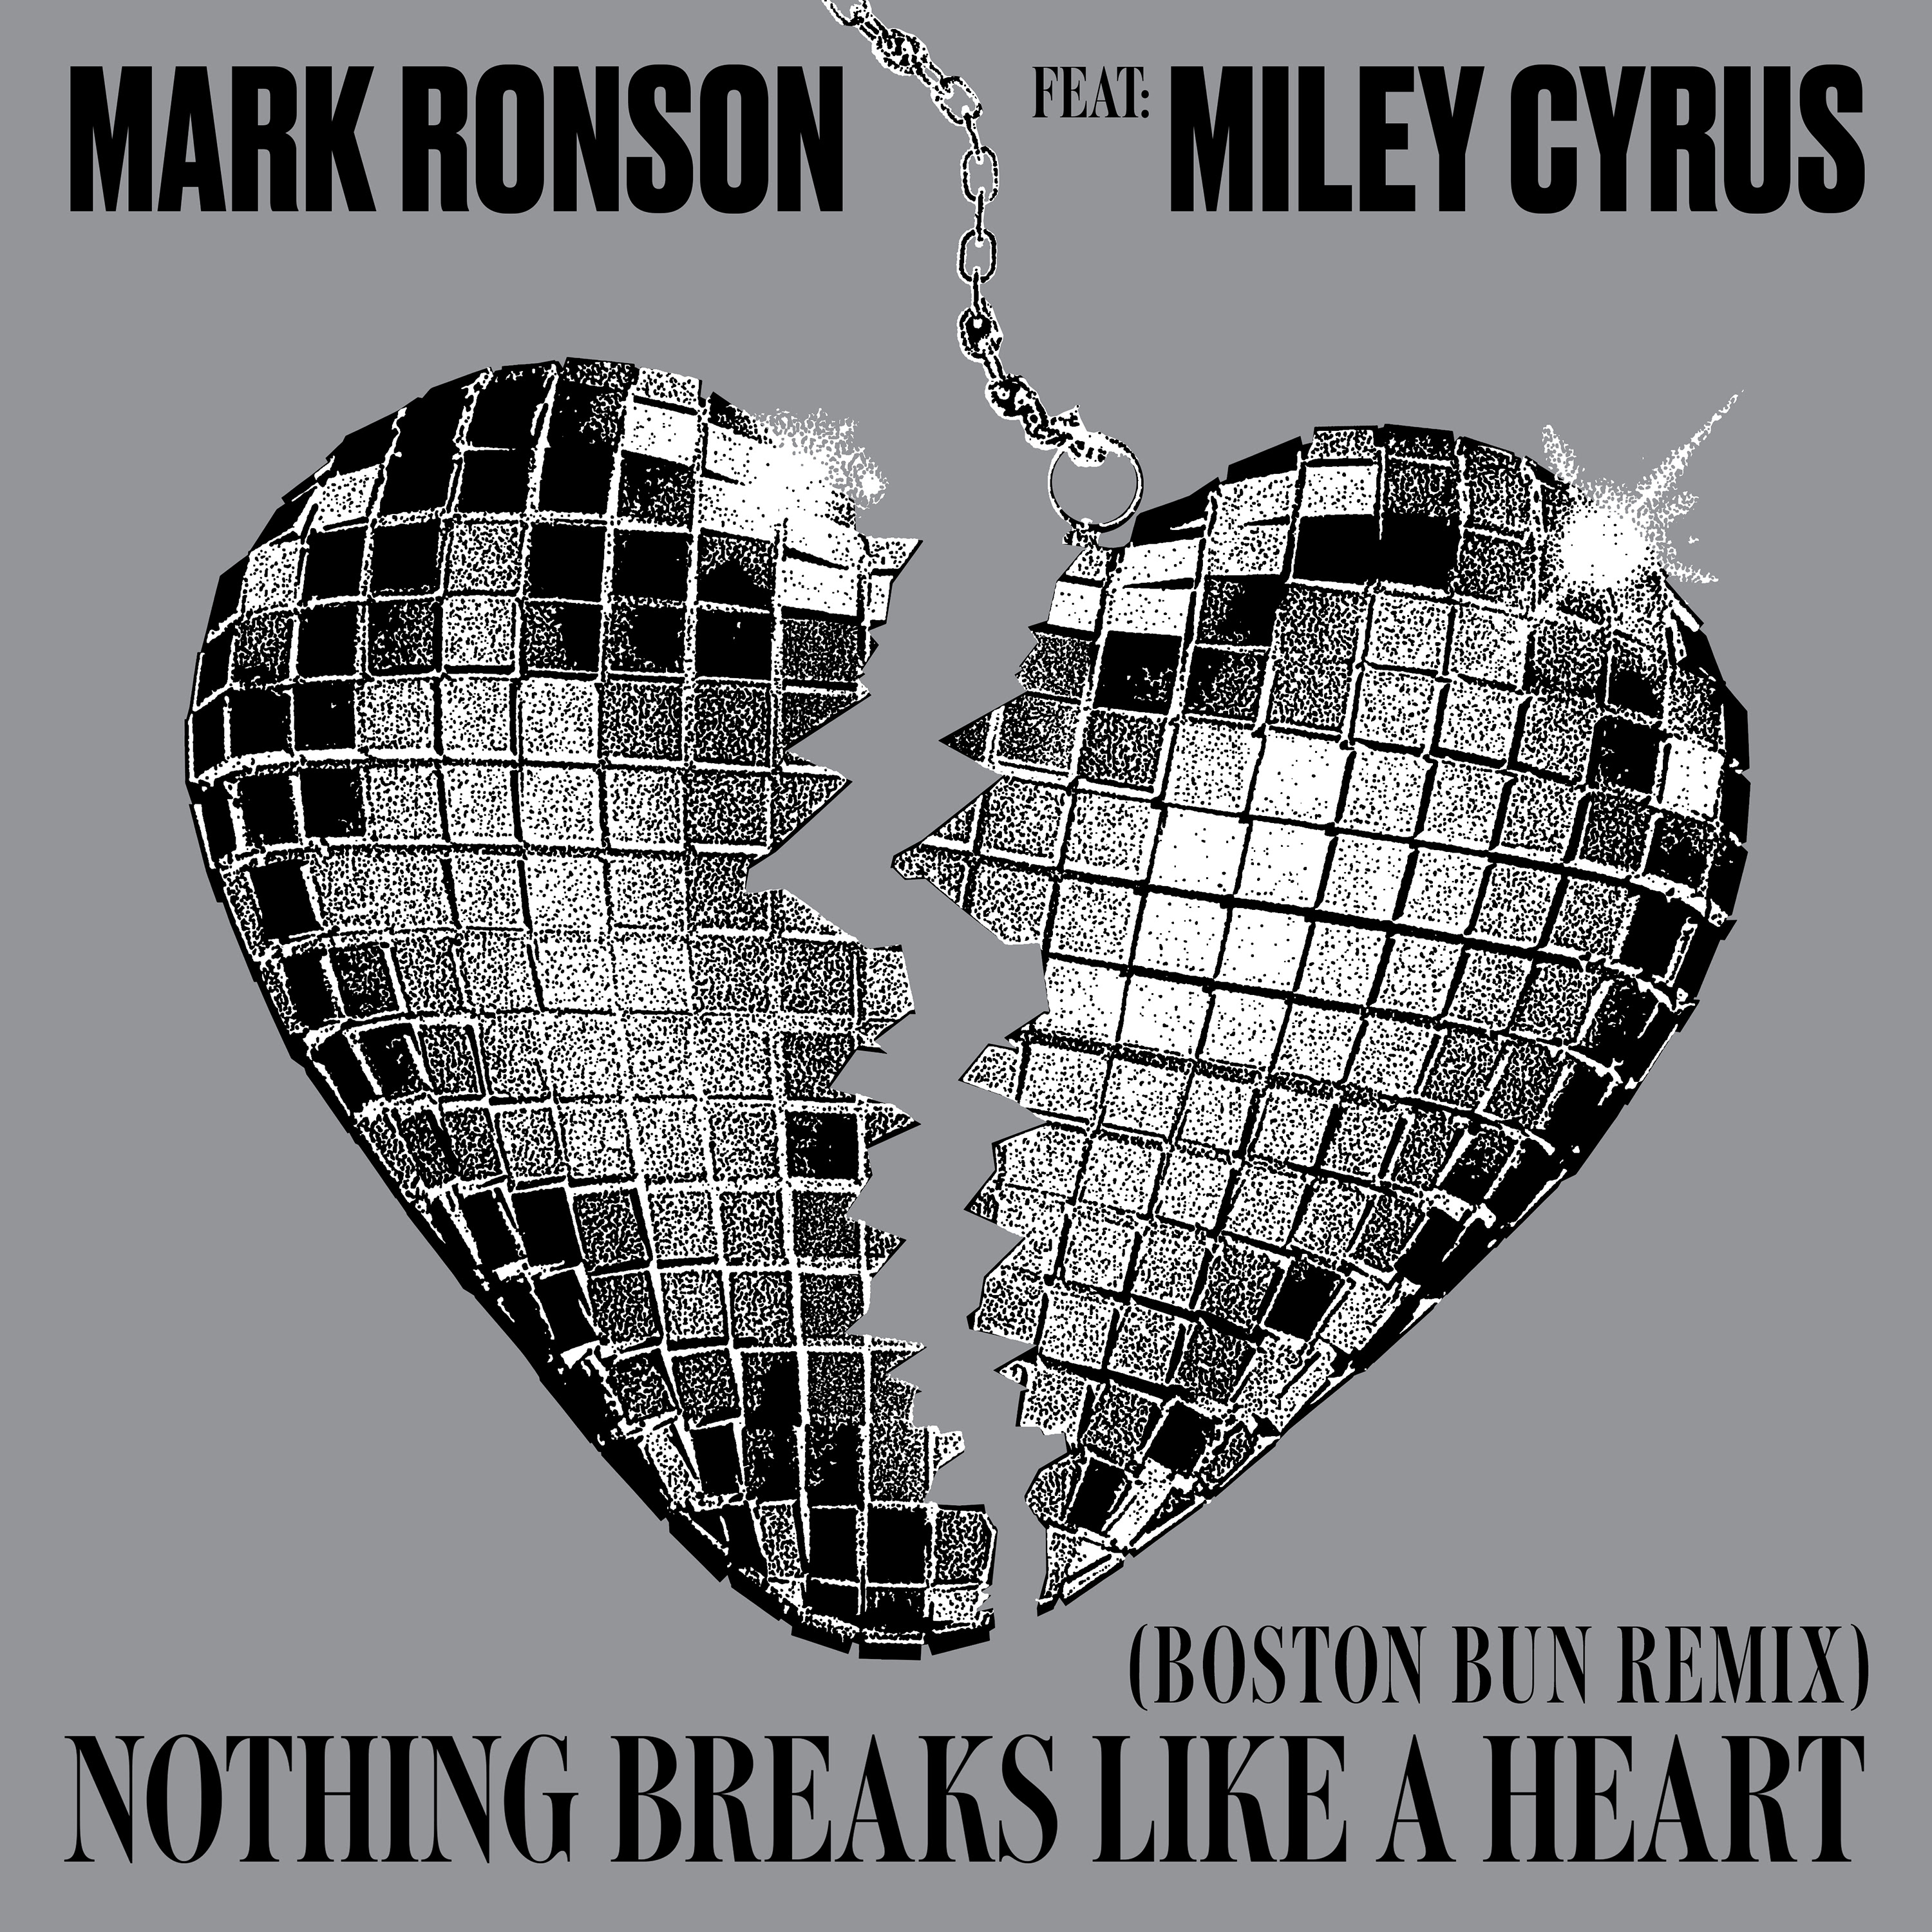 Mark Ronson Nothing Breaks Like A Heart Ft Miley Cyrus